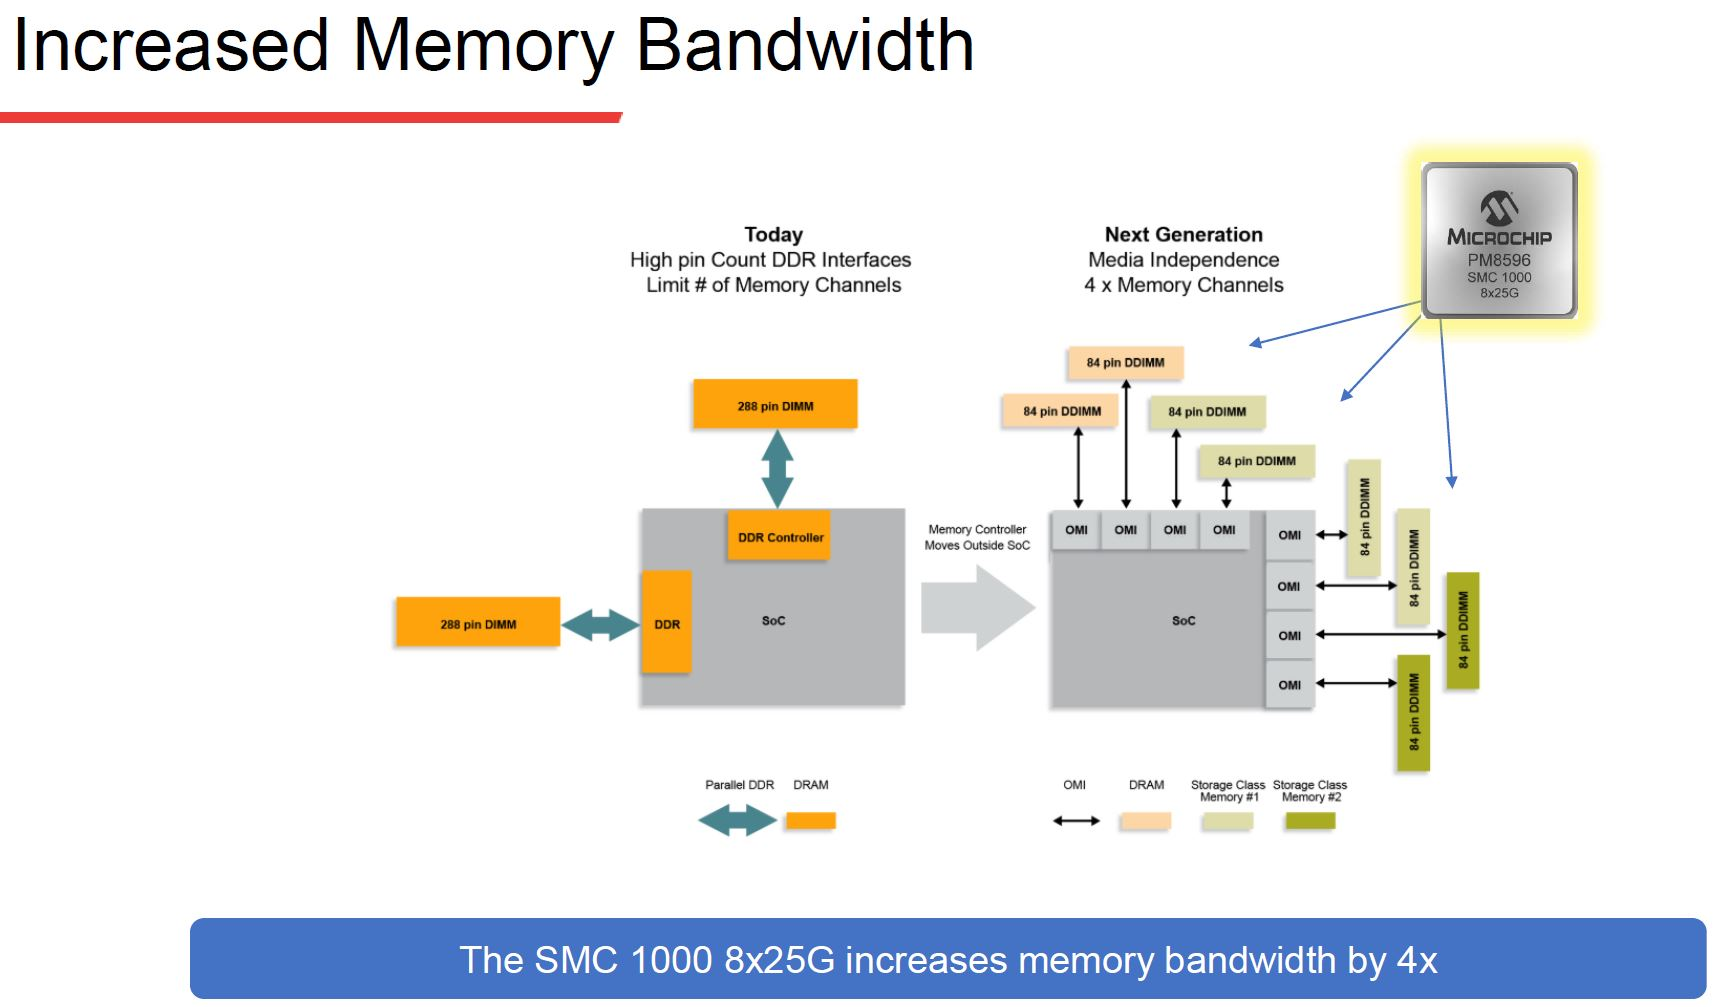 Microchip SMC 1000 For The Serial Attached Memory Future